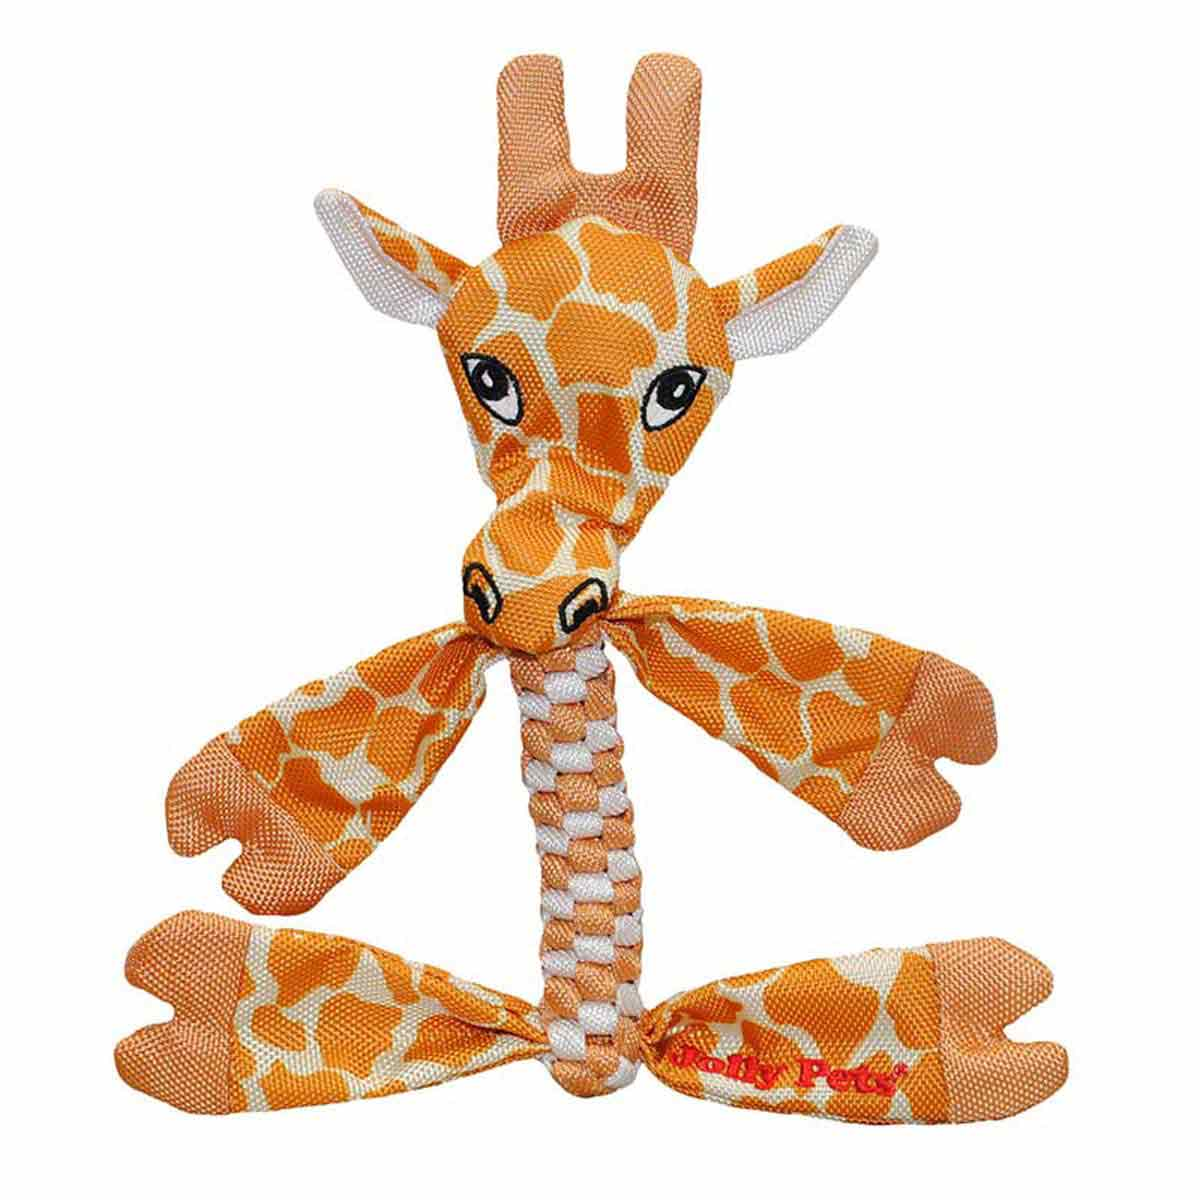 Small Giraffe Jolly Pet Animal Flathead Rope Dog Toy at Ryan's Pet Supplies